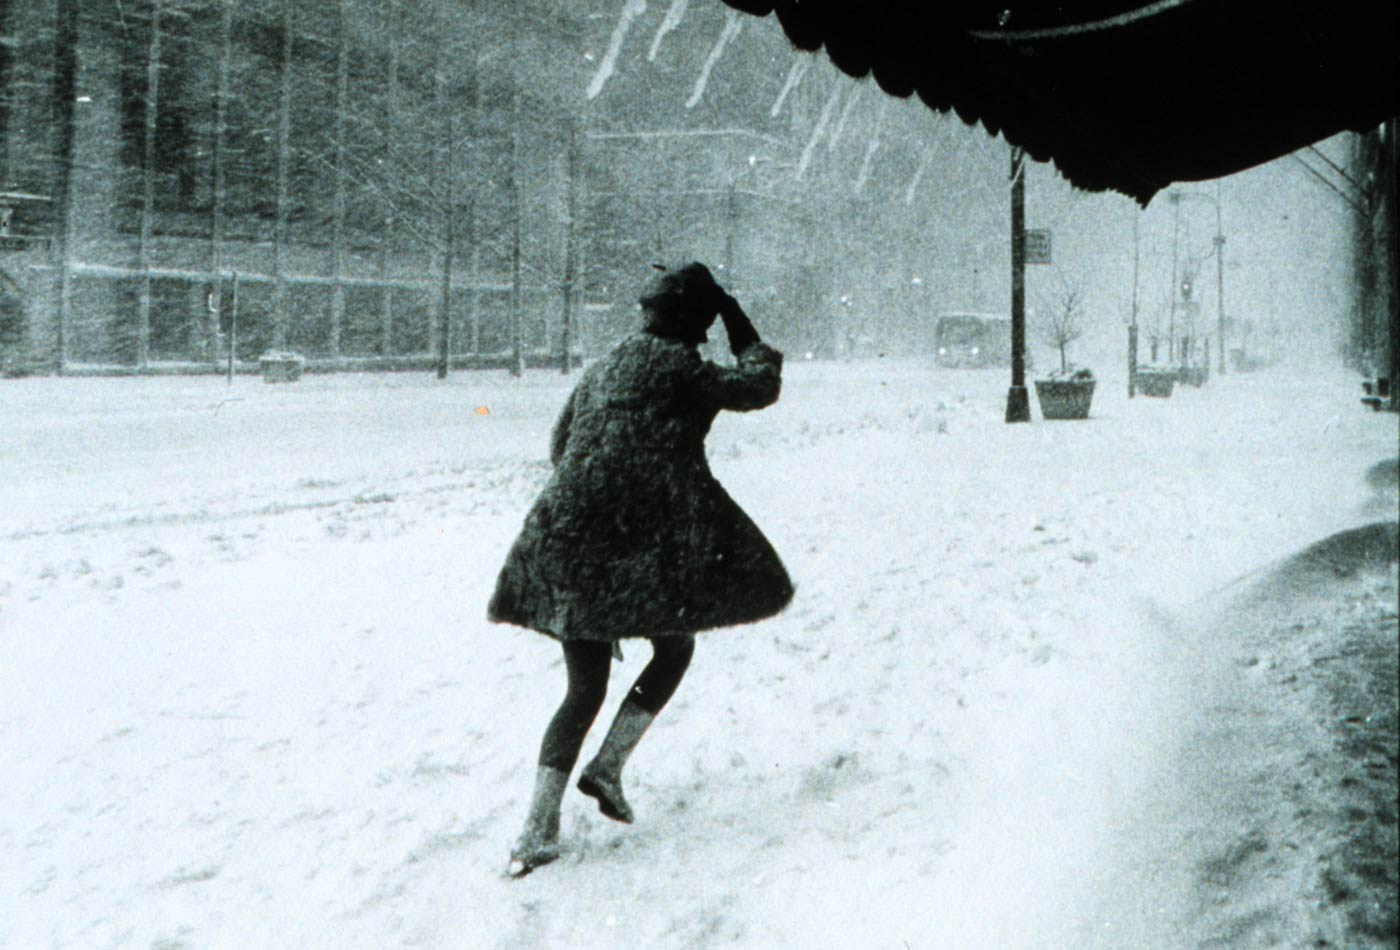 A resident struggles to walk in a blizzard in Manhattan, New York